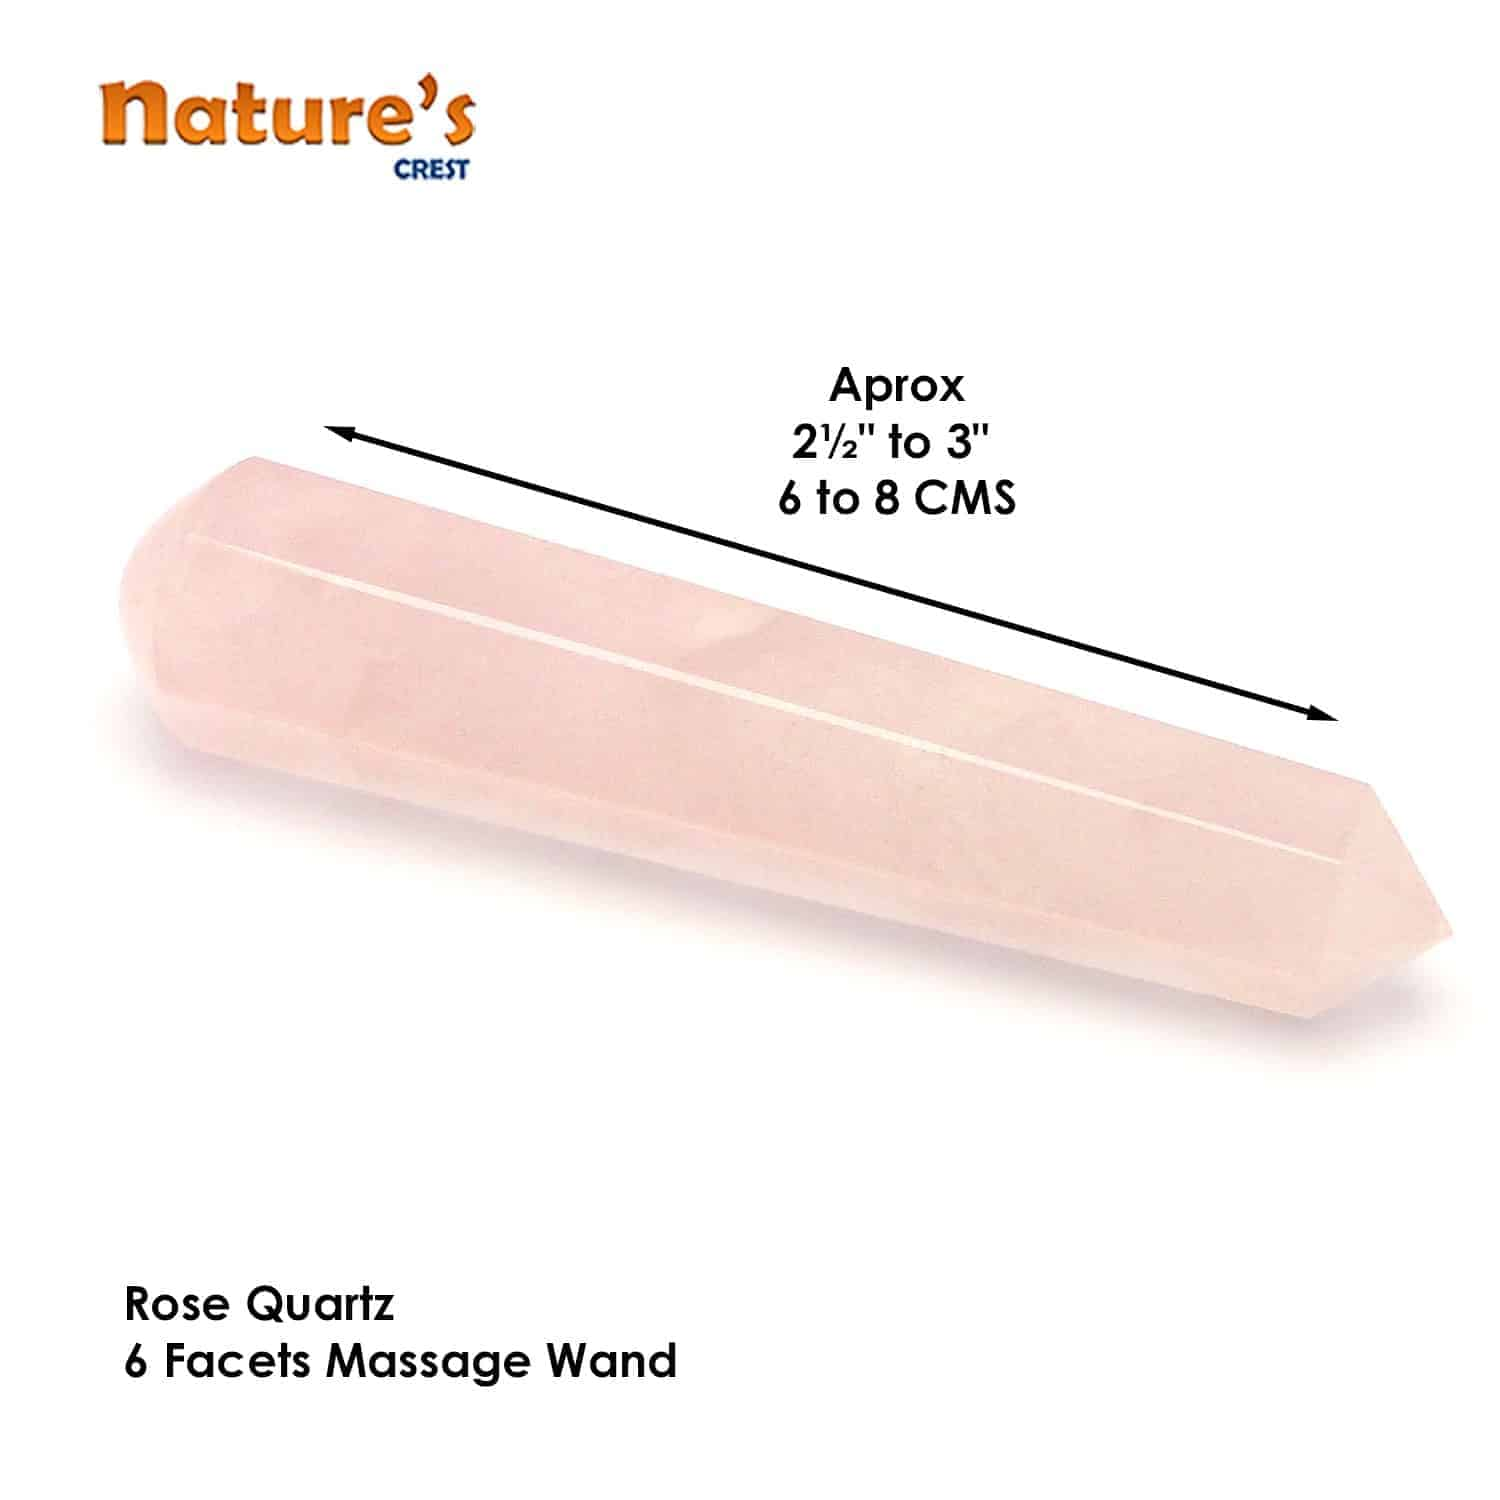 Rose Quartz Healing Wand Massage Stick Nature's Crest MS014 ₹ 499.00